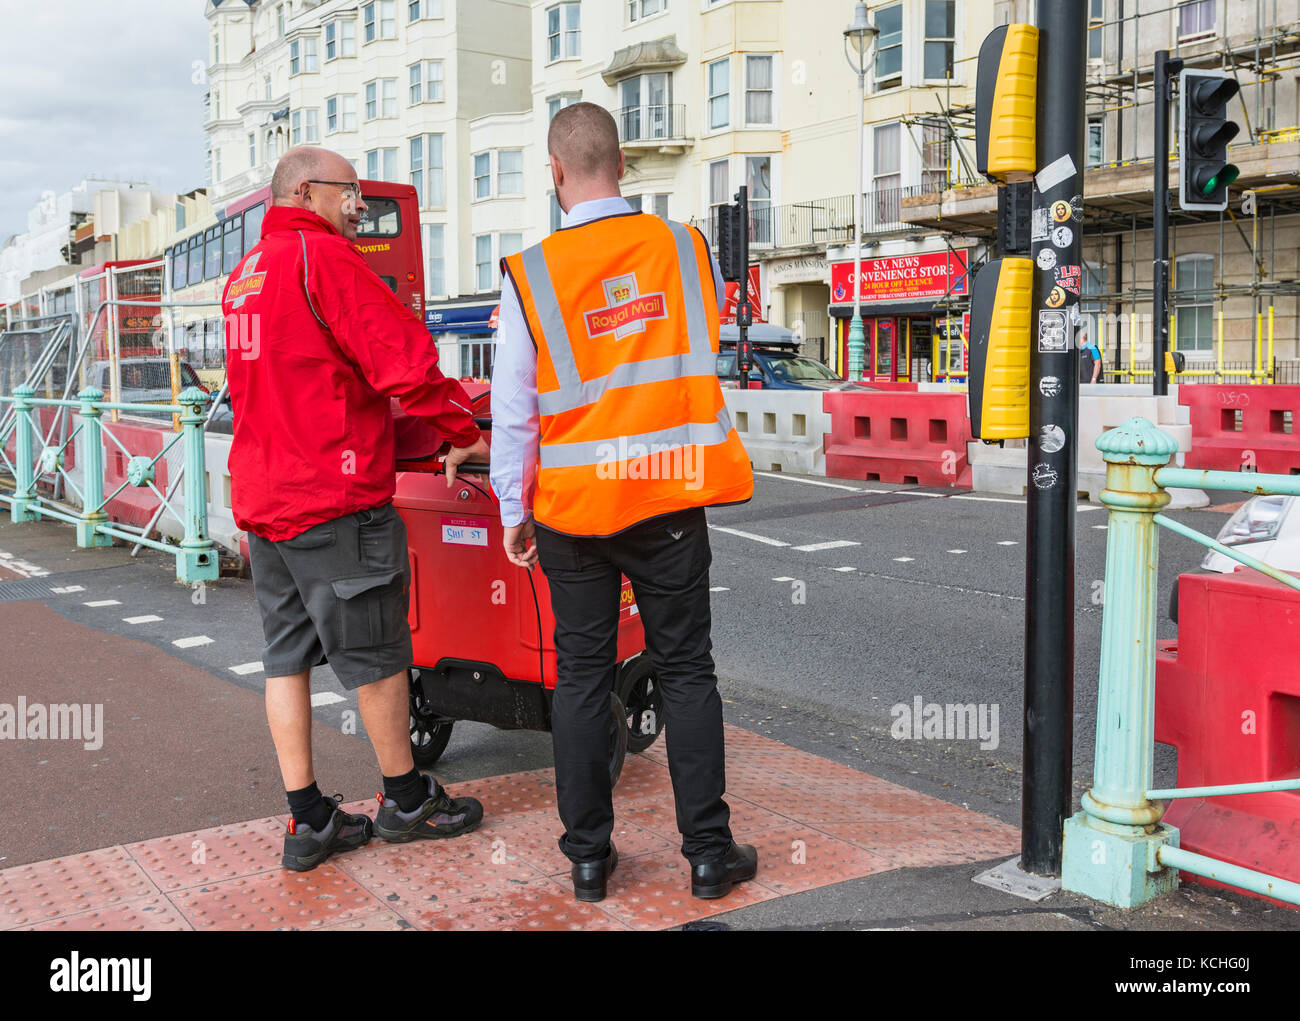 Pair of Royal Mail postmen crossing a road in a UK city. - Stock Image